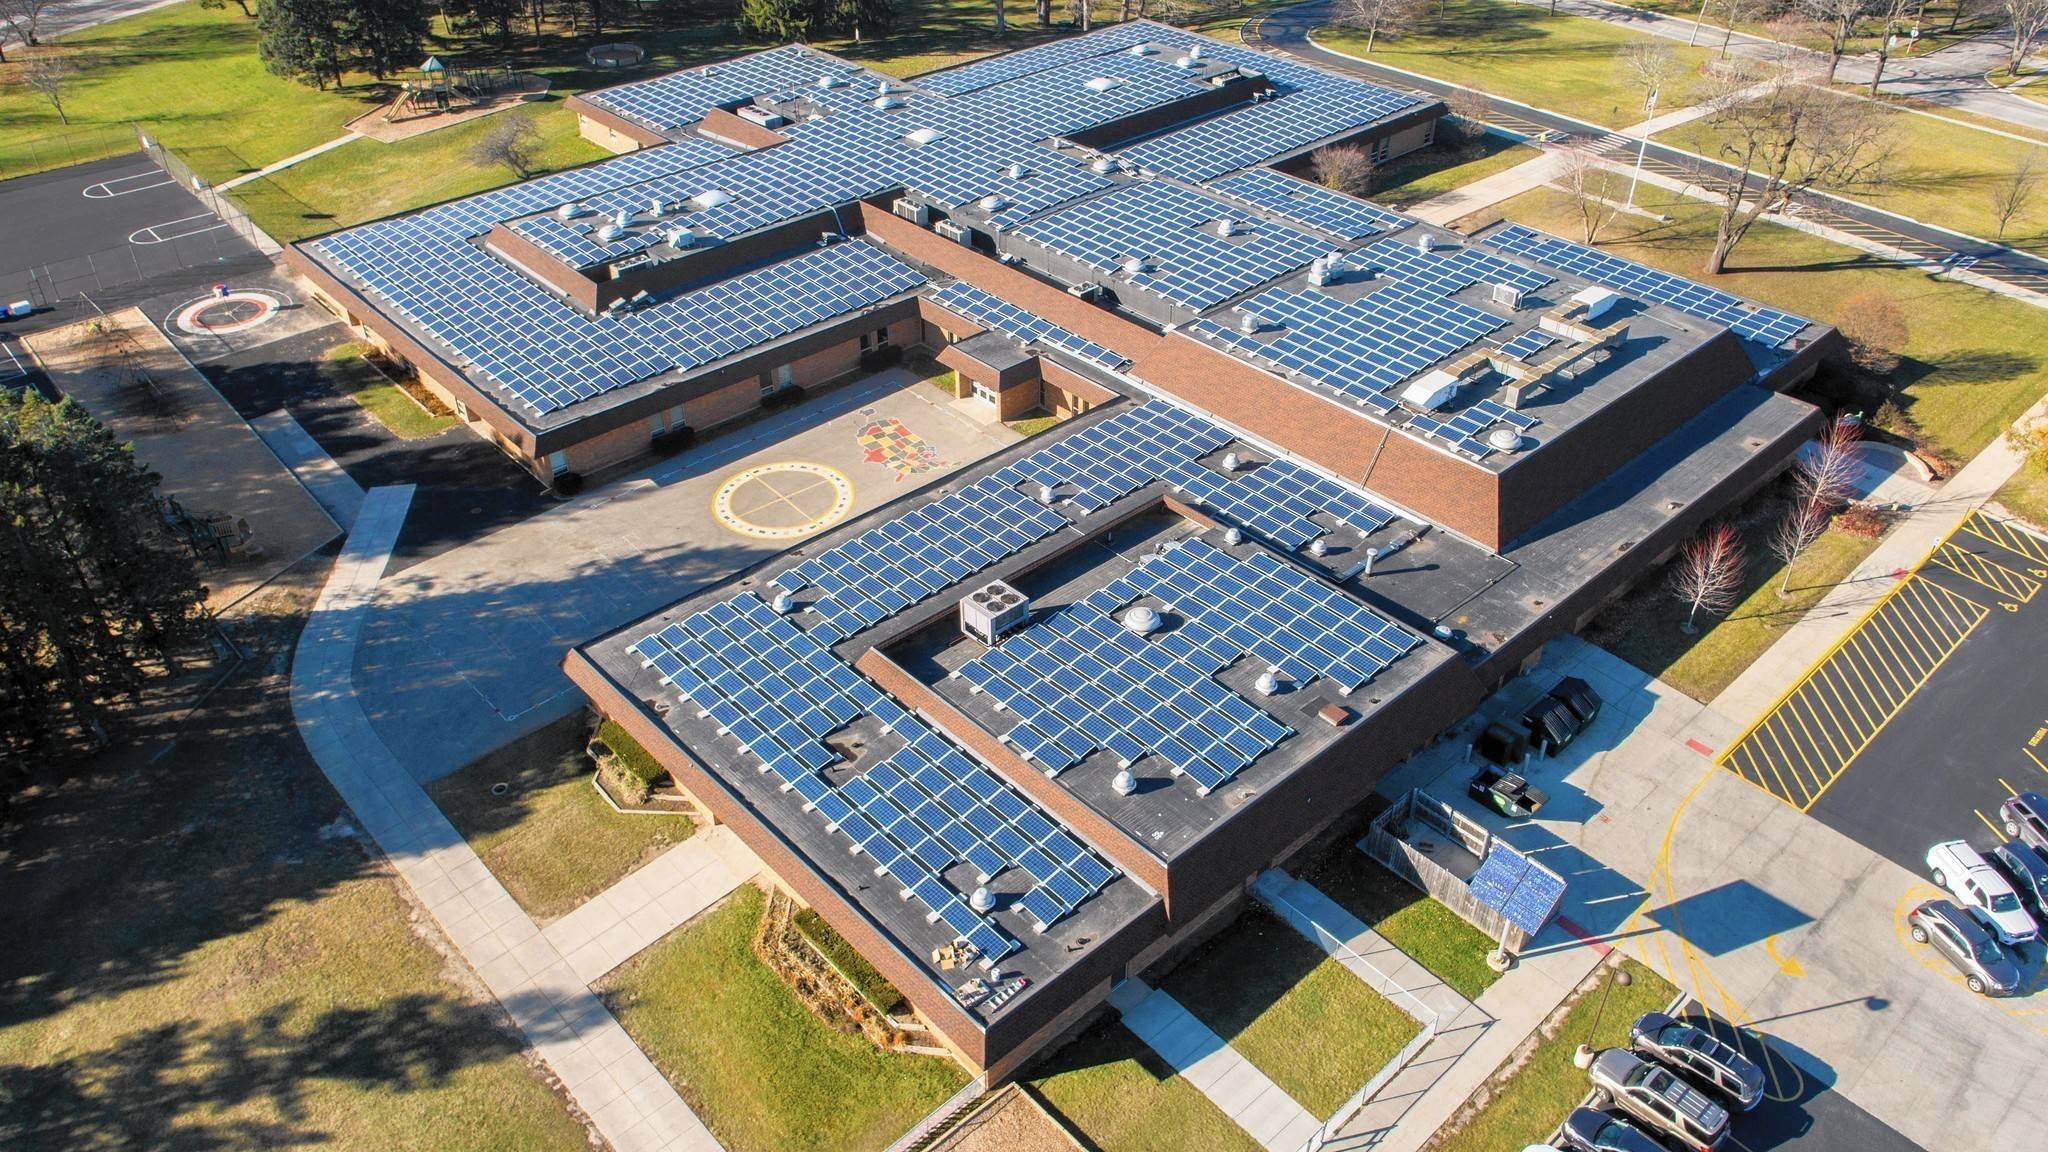 Libertyville schools' solar panels help teach, cut costs ...